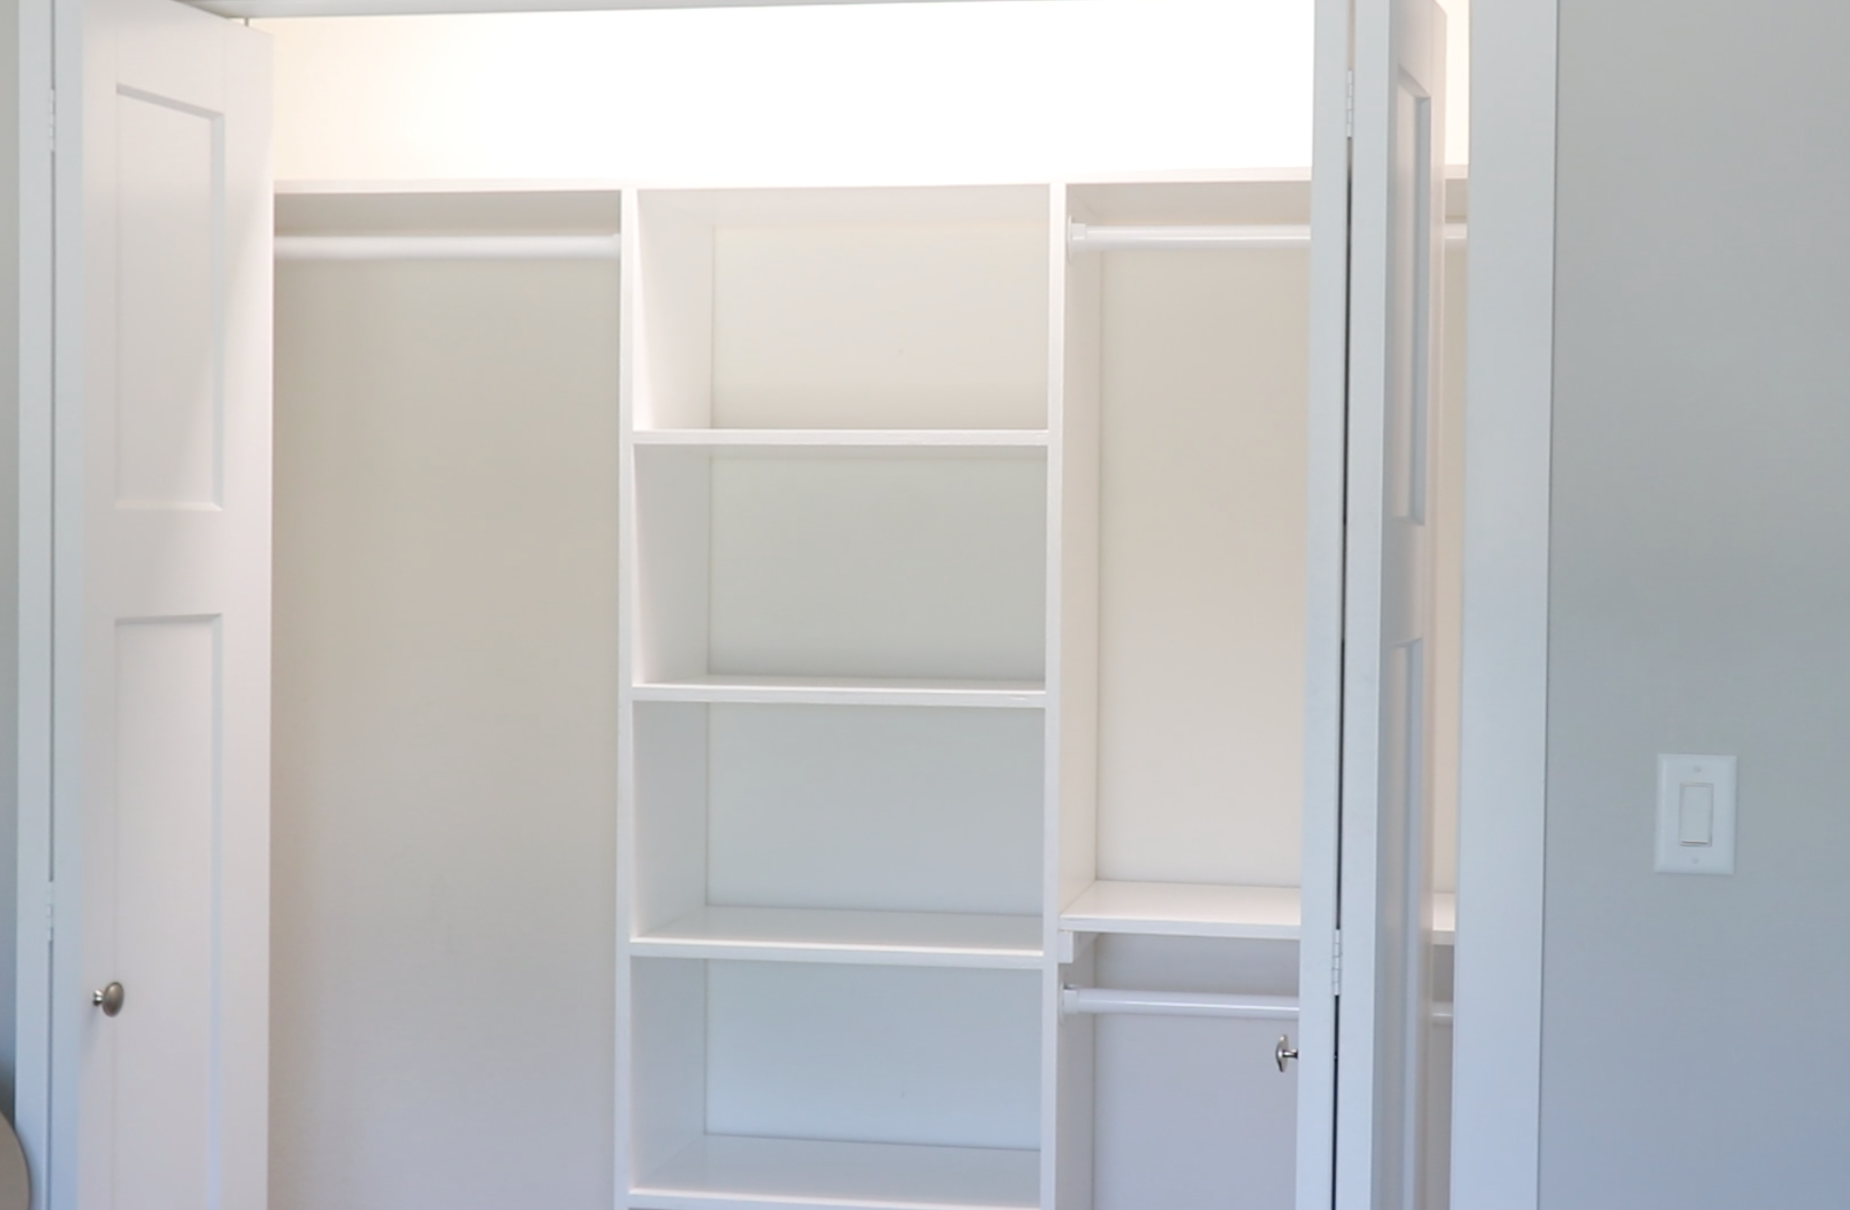 How to build custom closets for $100 DIY Woodworking